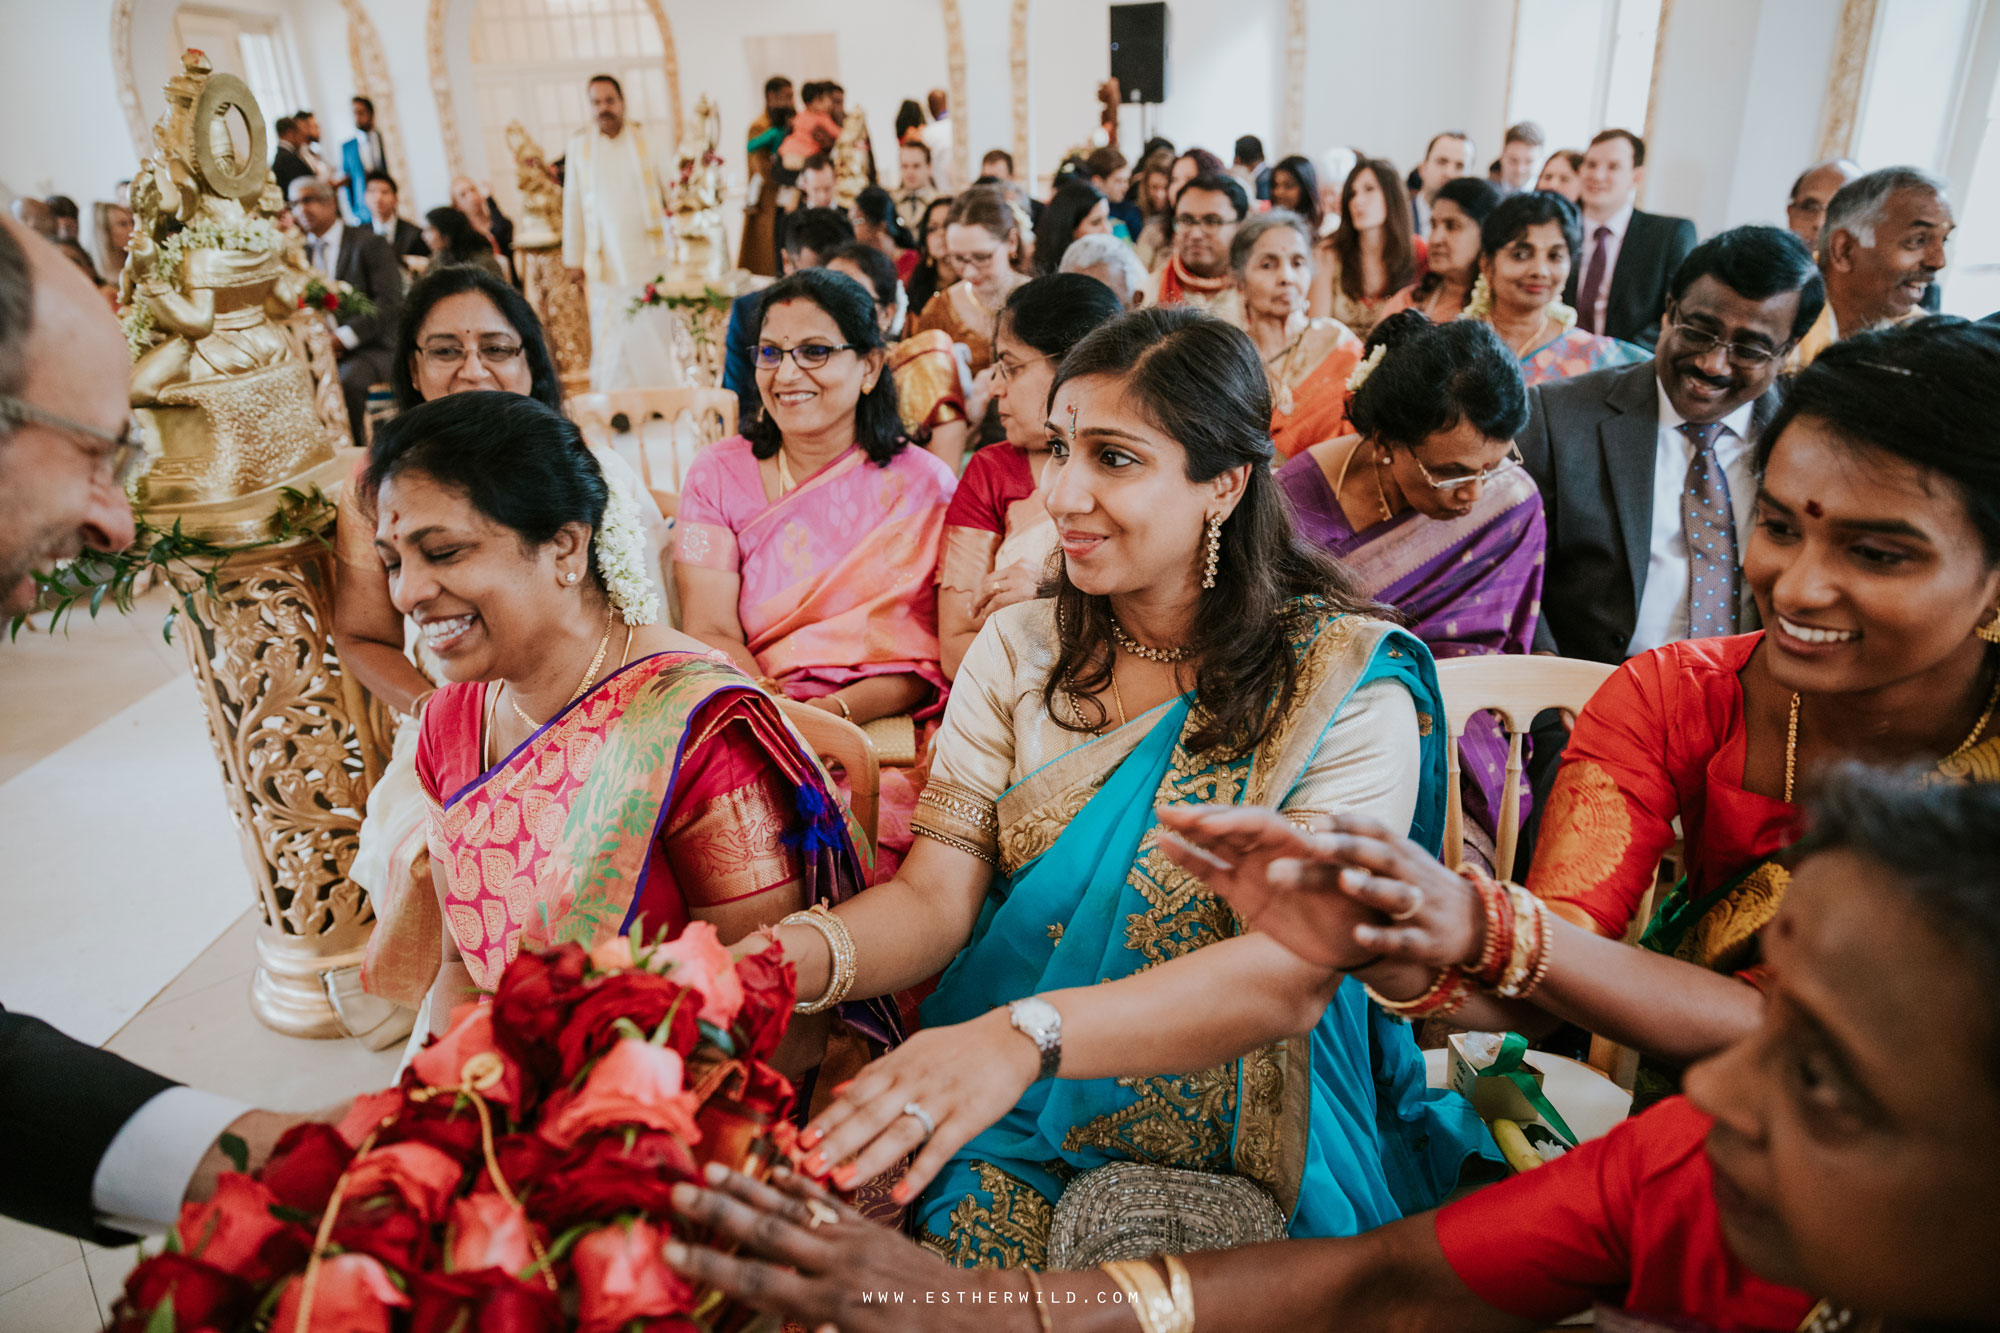 Northbrook_Park_Farnham_Surrey_London_Wedding_Hindu_Fusion_Esther_Wild_Photographer_IMG_4347.jpg